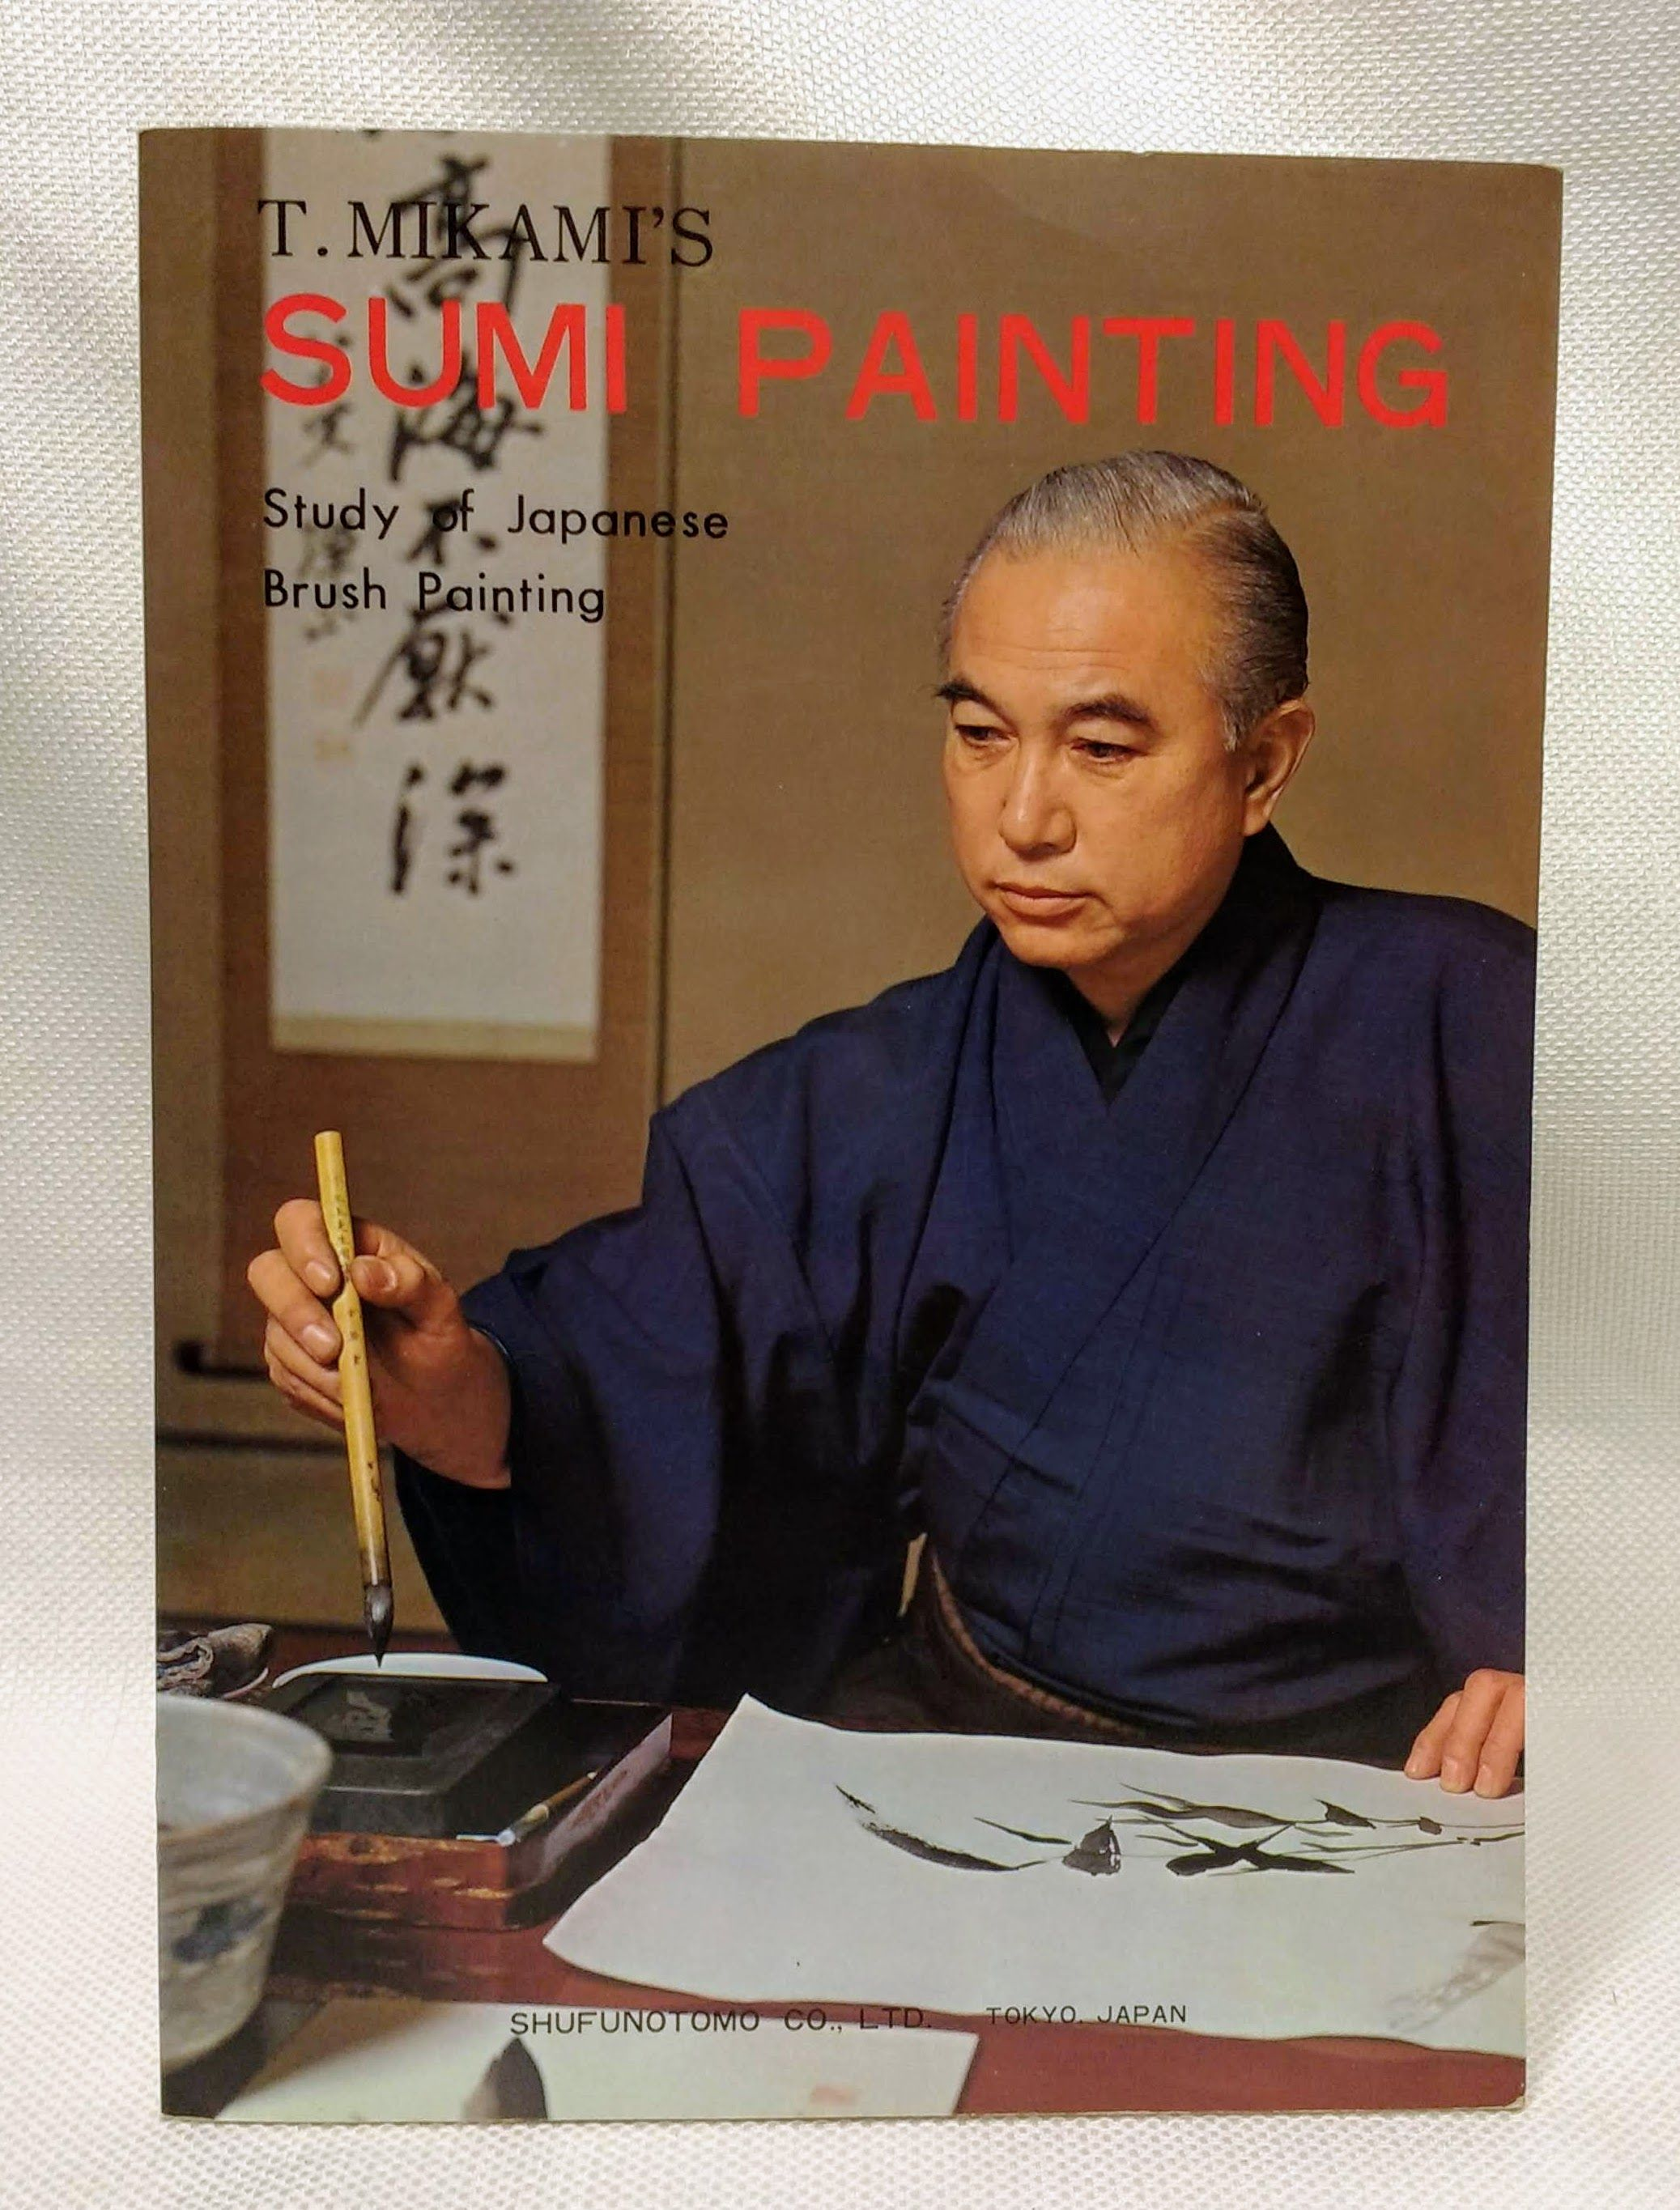 Image for T. Mikami's Sumi Painting: Study of Japanese Brush Painting